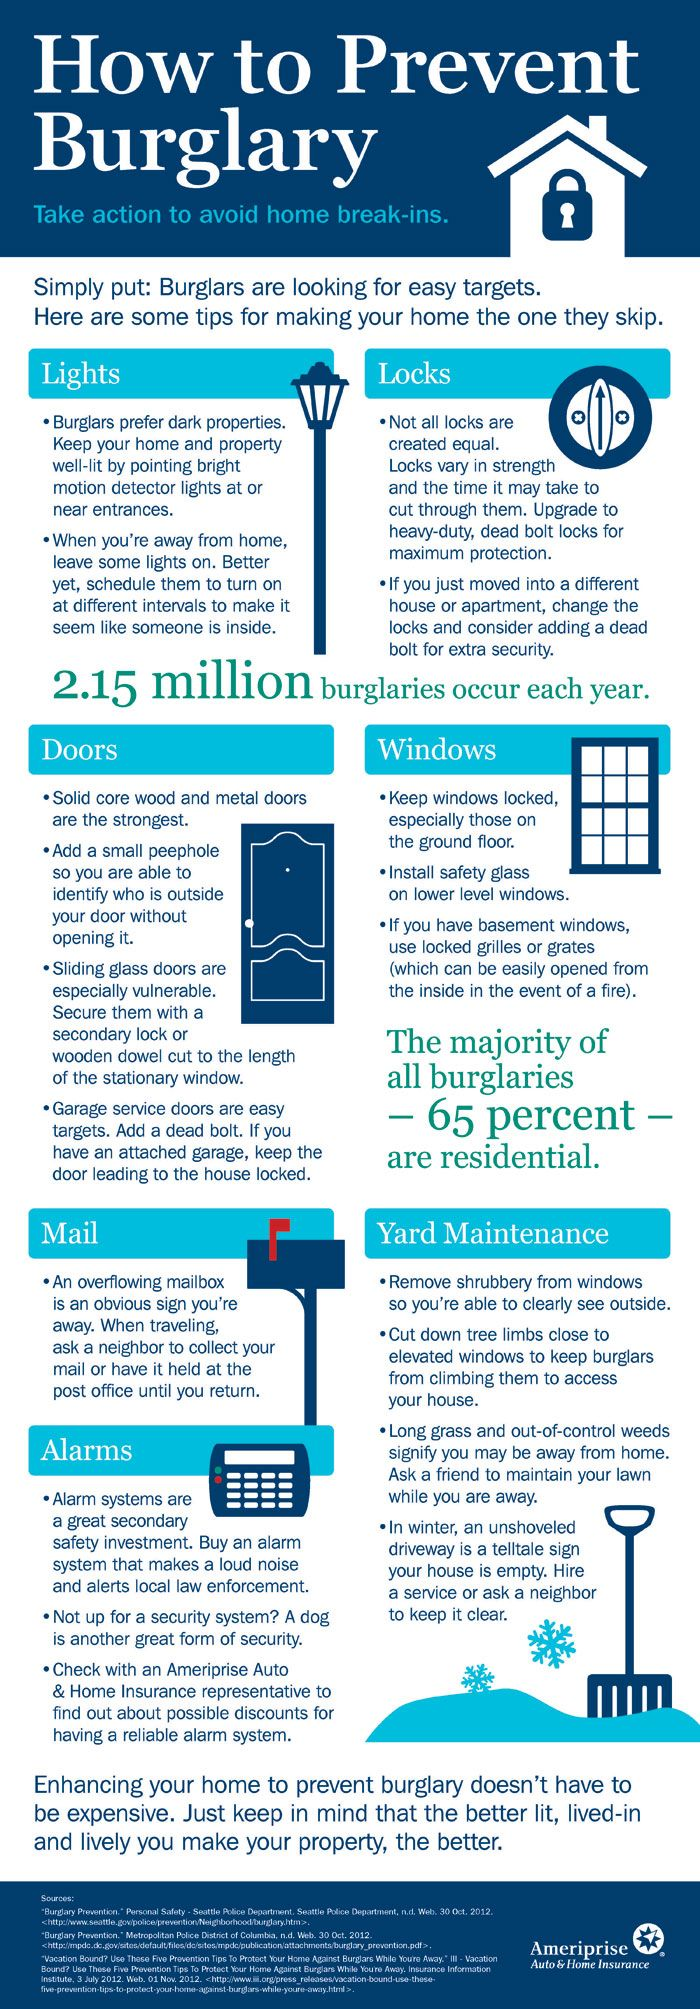 There are many steps you can take to prevent burglaries. If you want to go that extra step to providing security at your property then get a free quote at http://www.securicocctv.co.uk/free-quote/ to see what we can do for you.